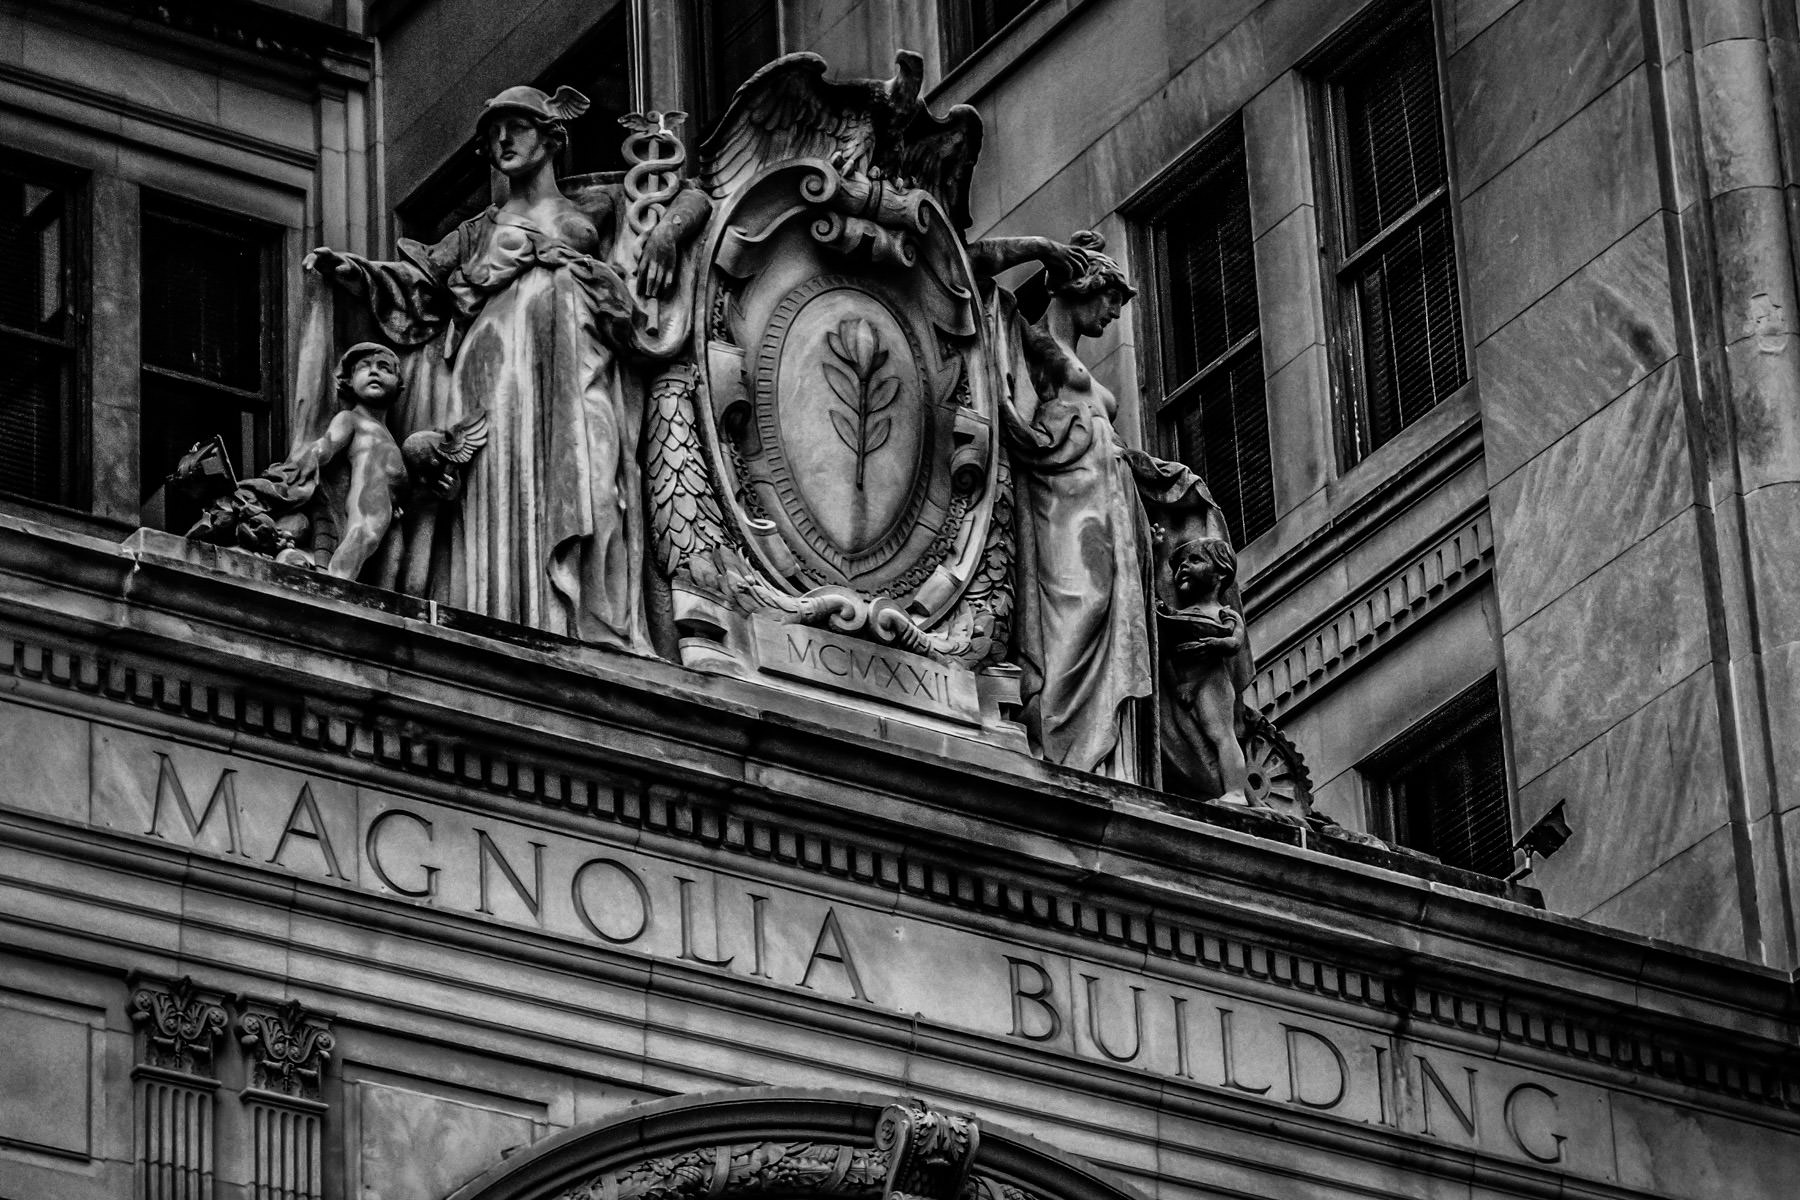 Detail of Dallas' Magnolia Building (now the Magnolia Hotel), built in 1921 as the headquarters of the Magnolia Petroleum Company, which was later absorbed into Mobil Oil.